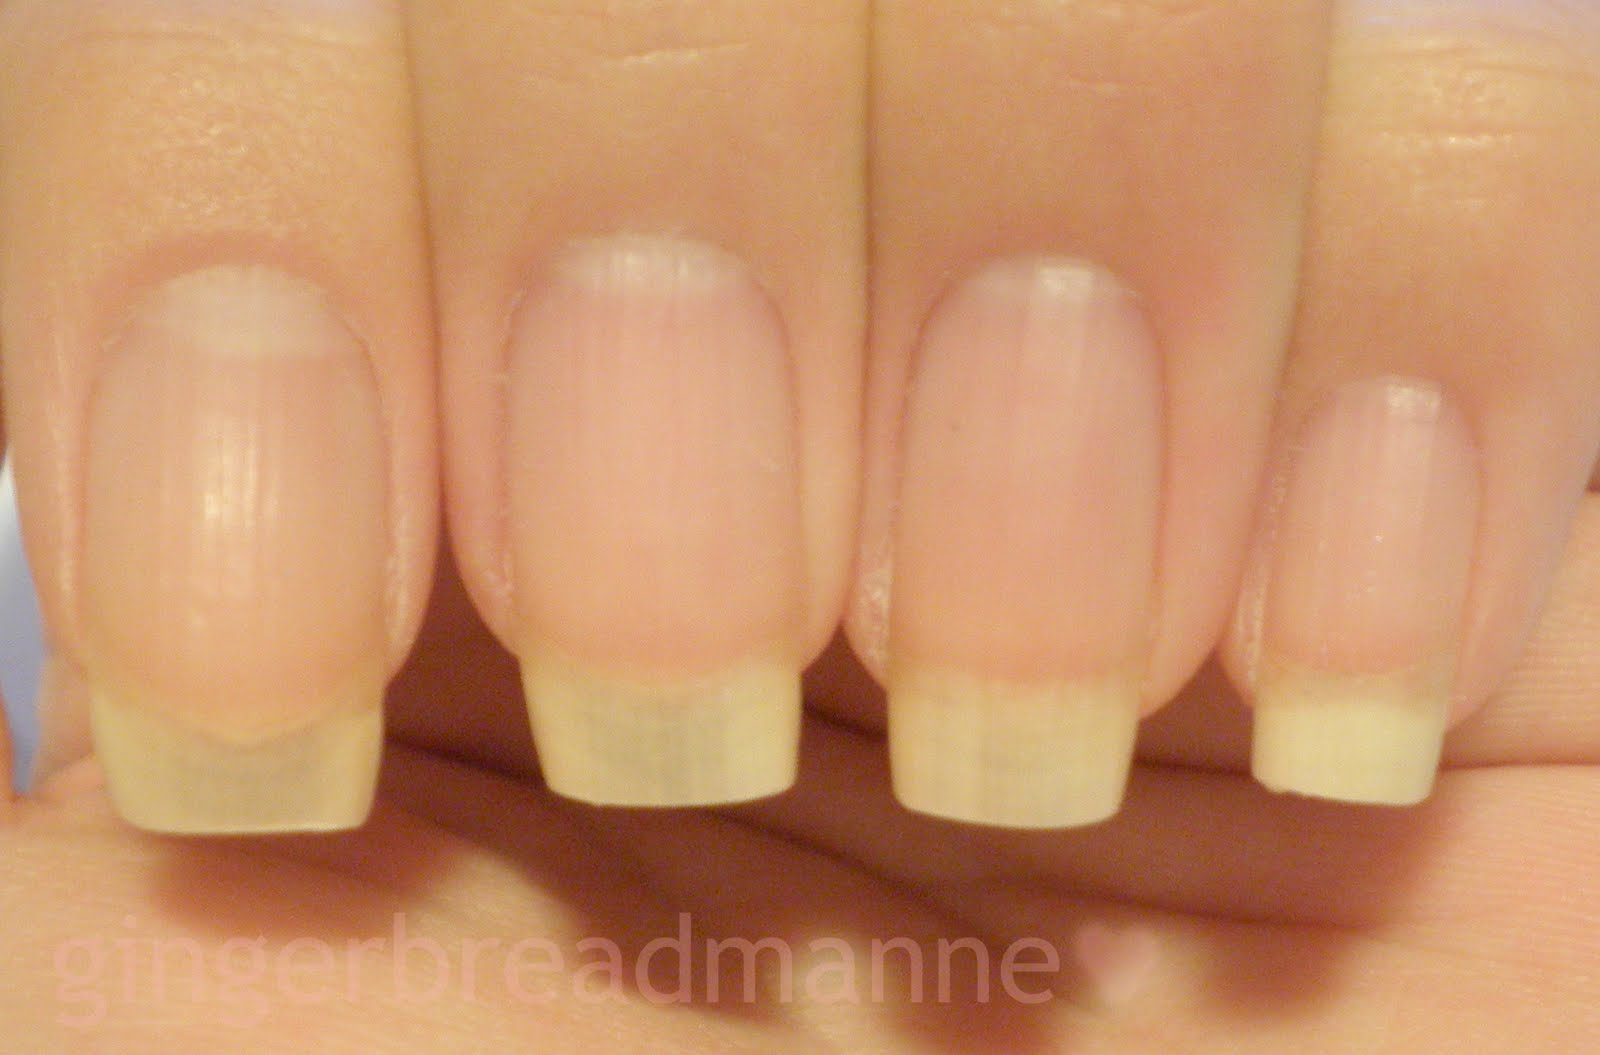 gingerbreadmanne ♥: Nail shaping tutorial (square tips)